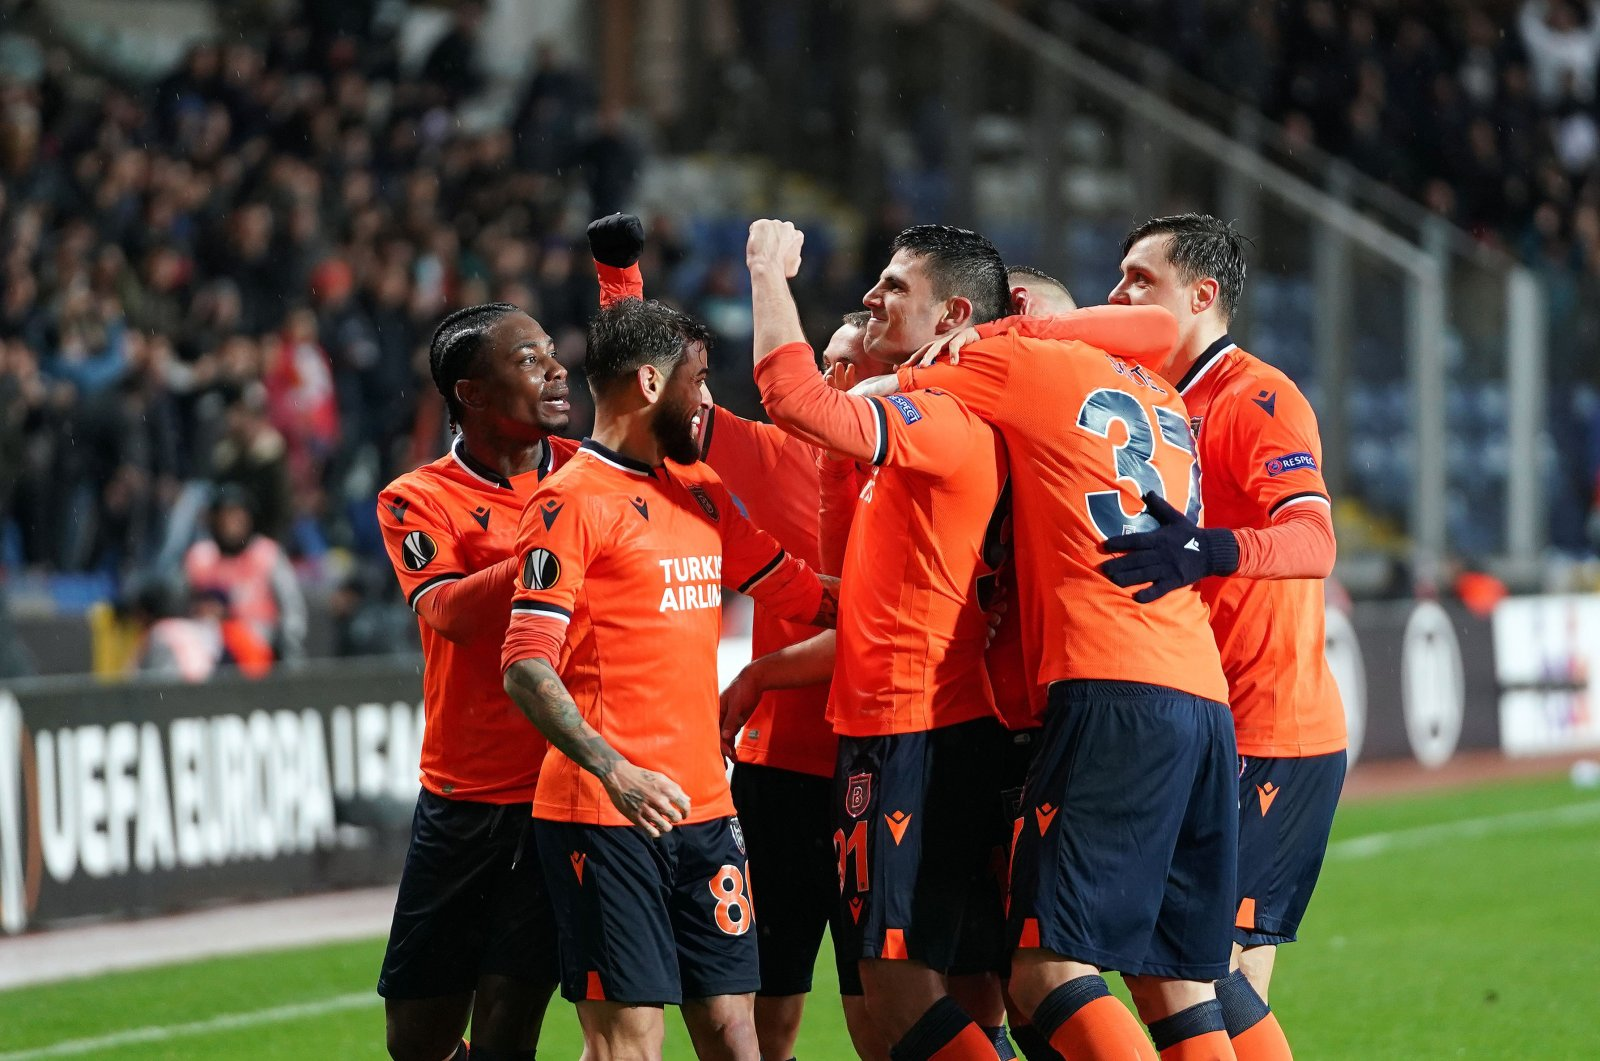 Başakşehir players celebrate advancing to the next round in UEFA Europea League after knocking out Sporting CP, Feb. 27, 2020. (İHA Photo)